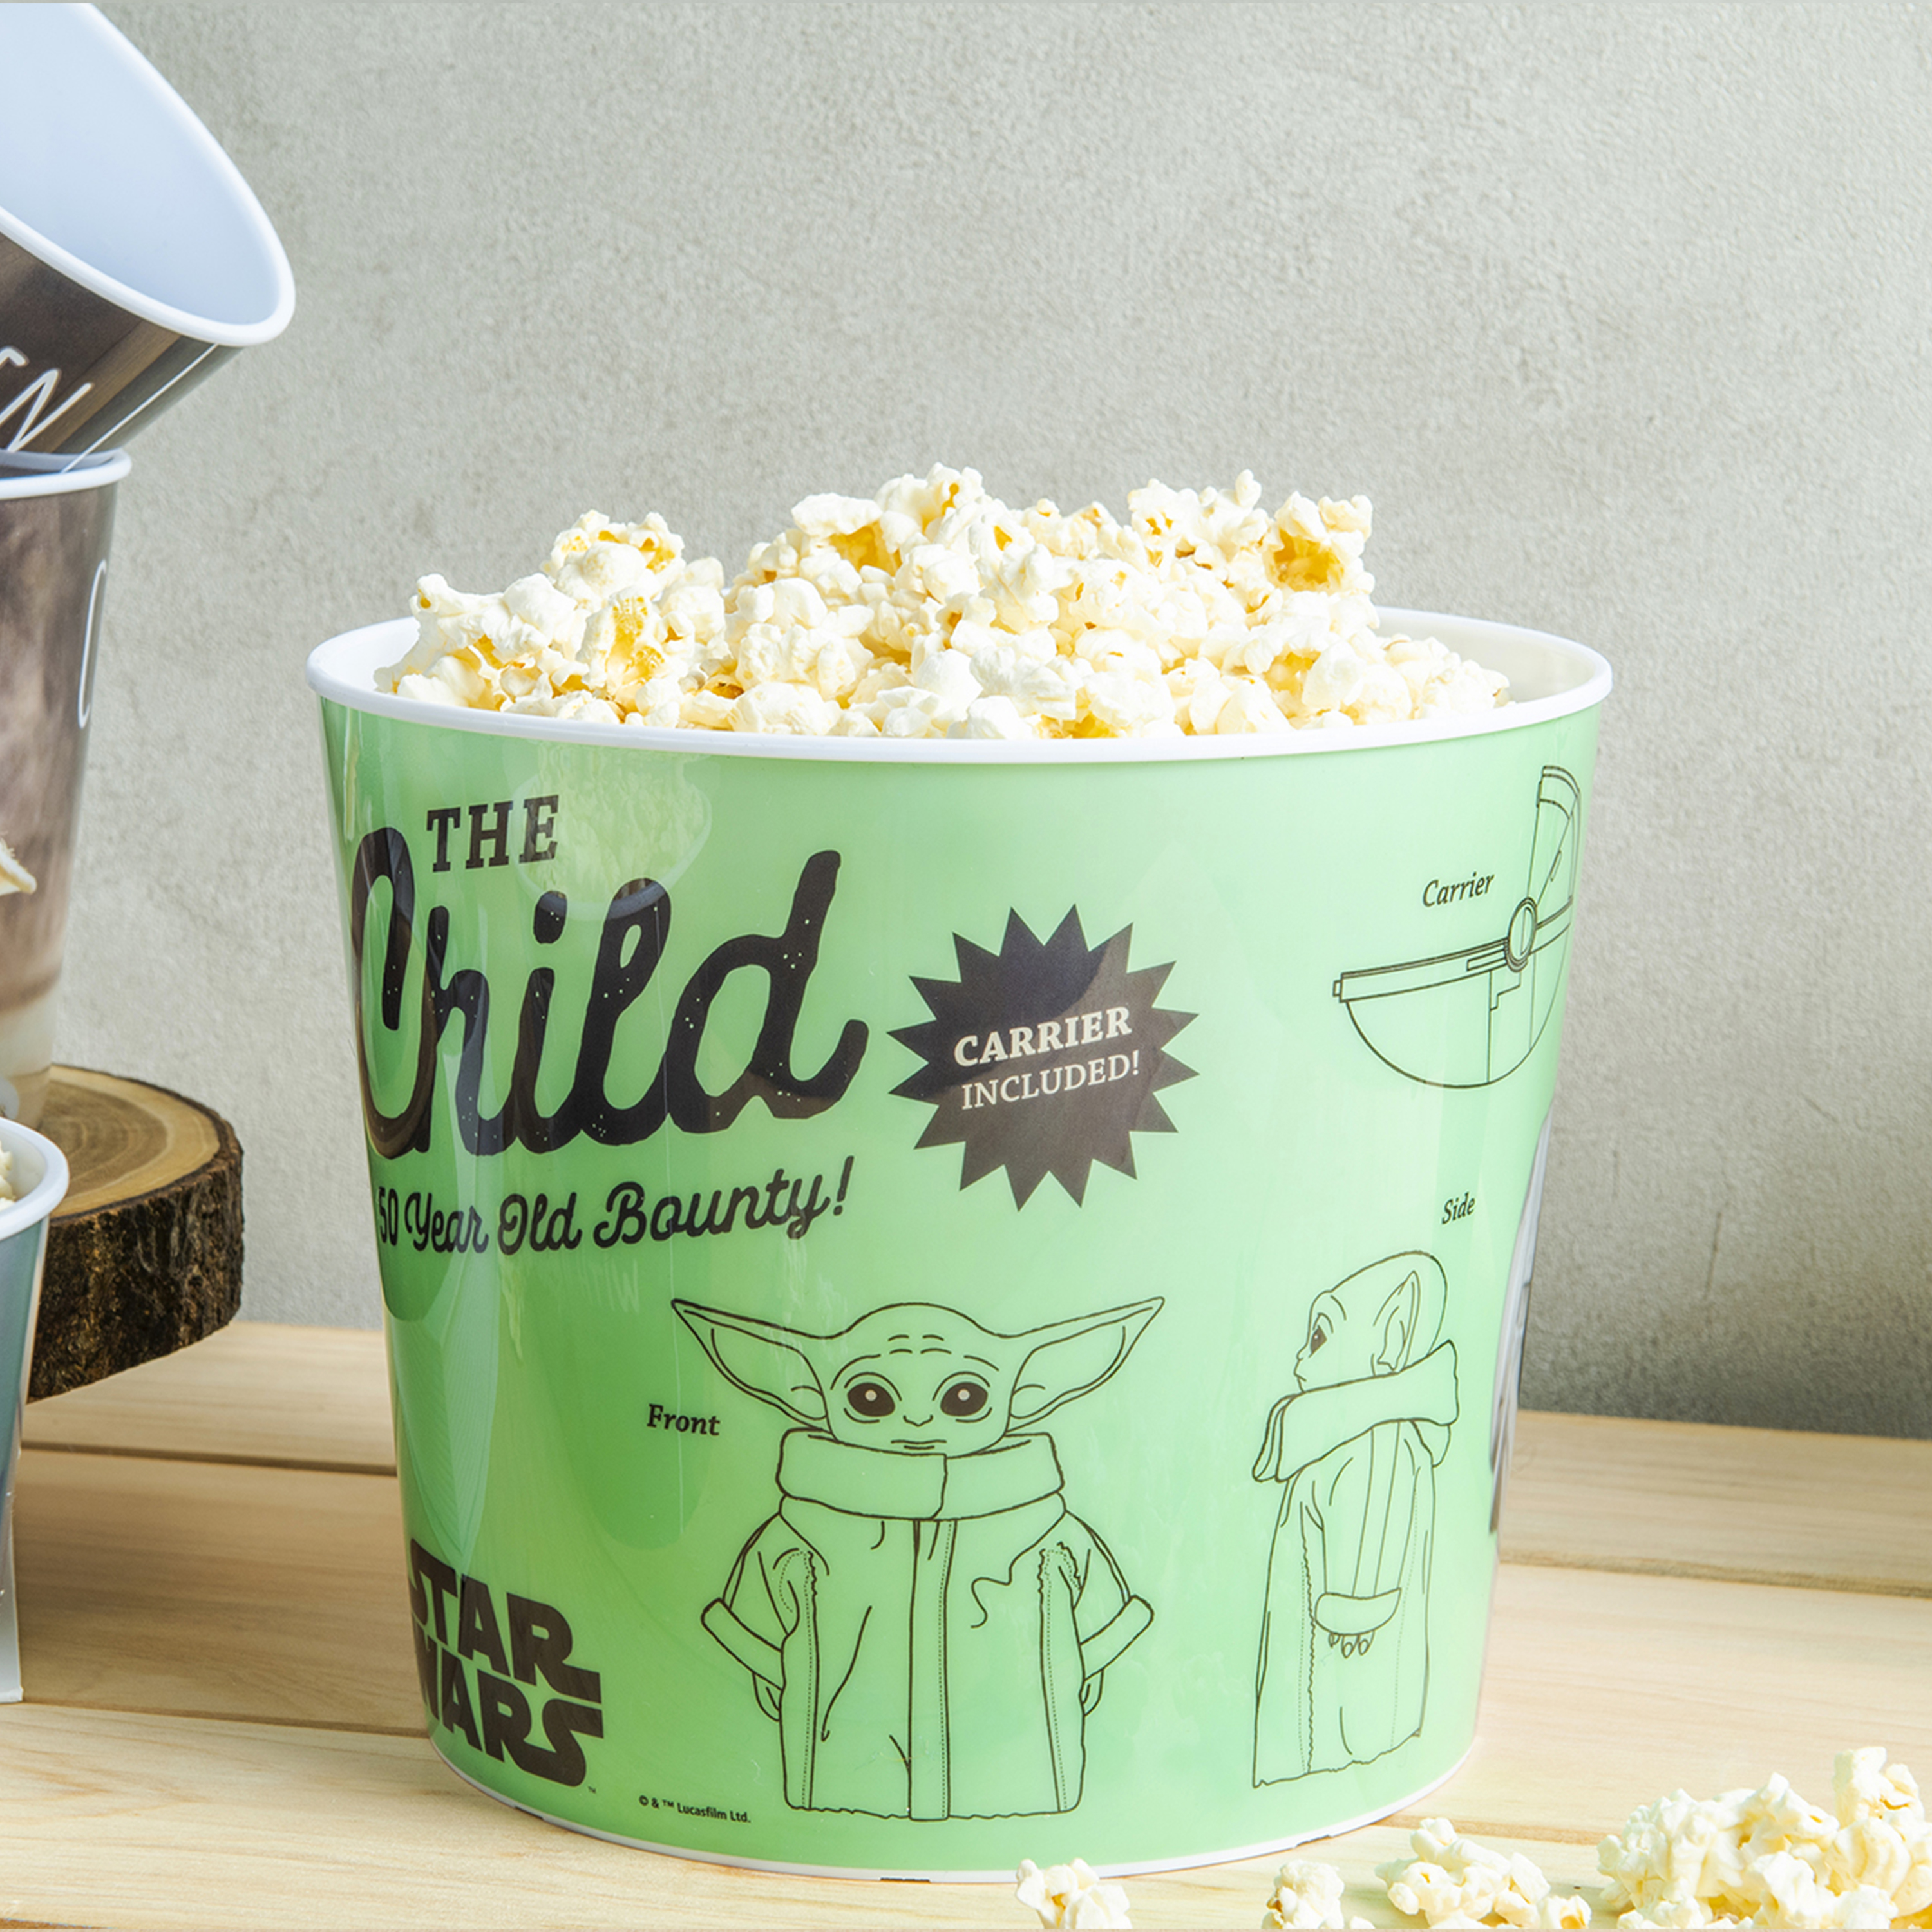 Star Wars: The Mandalorian Plastic Popcorn Container and Bowls, The Child (Baby Yoda), 5-piece set slideshow image 3